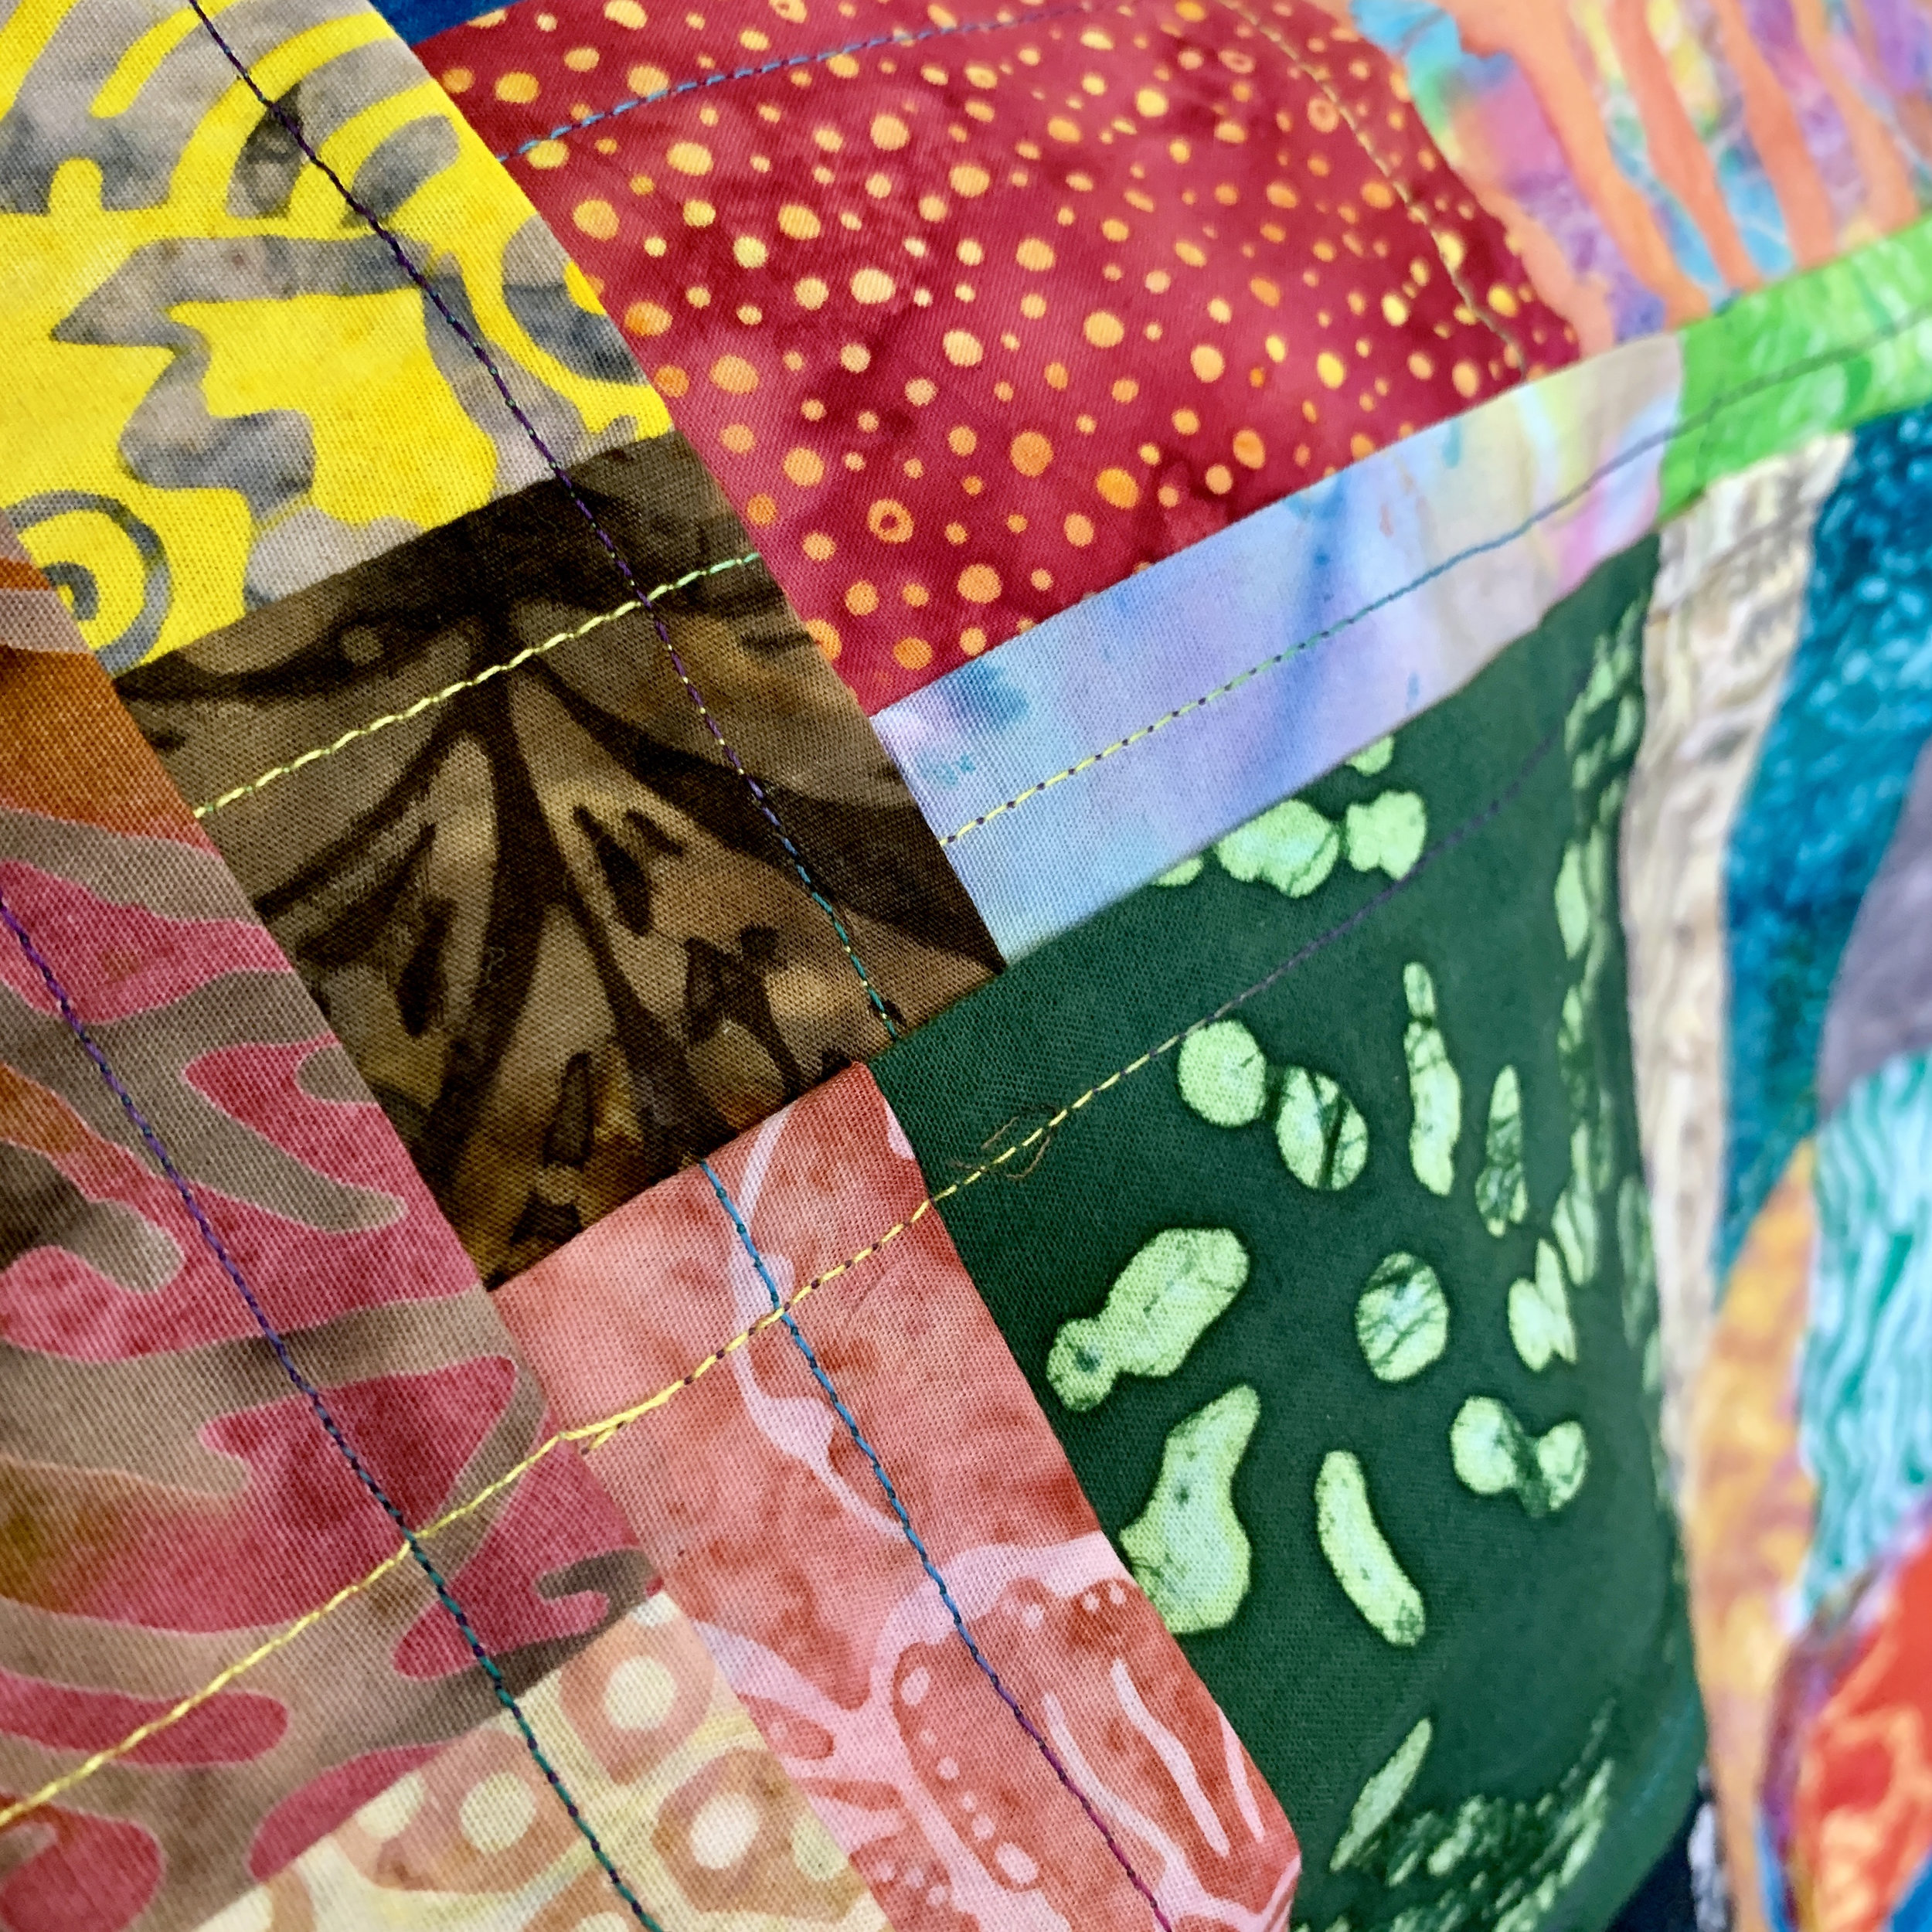 Detail of the quilt by Gail Johnson